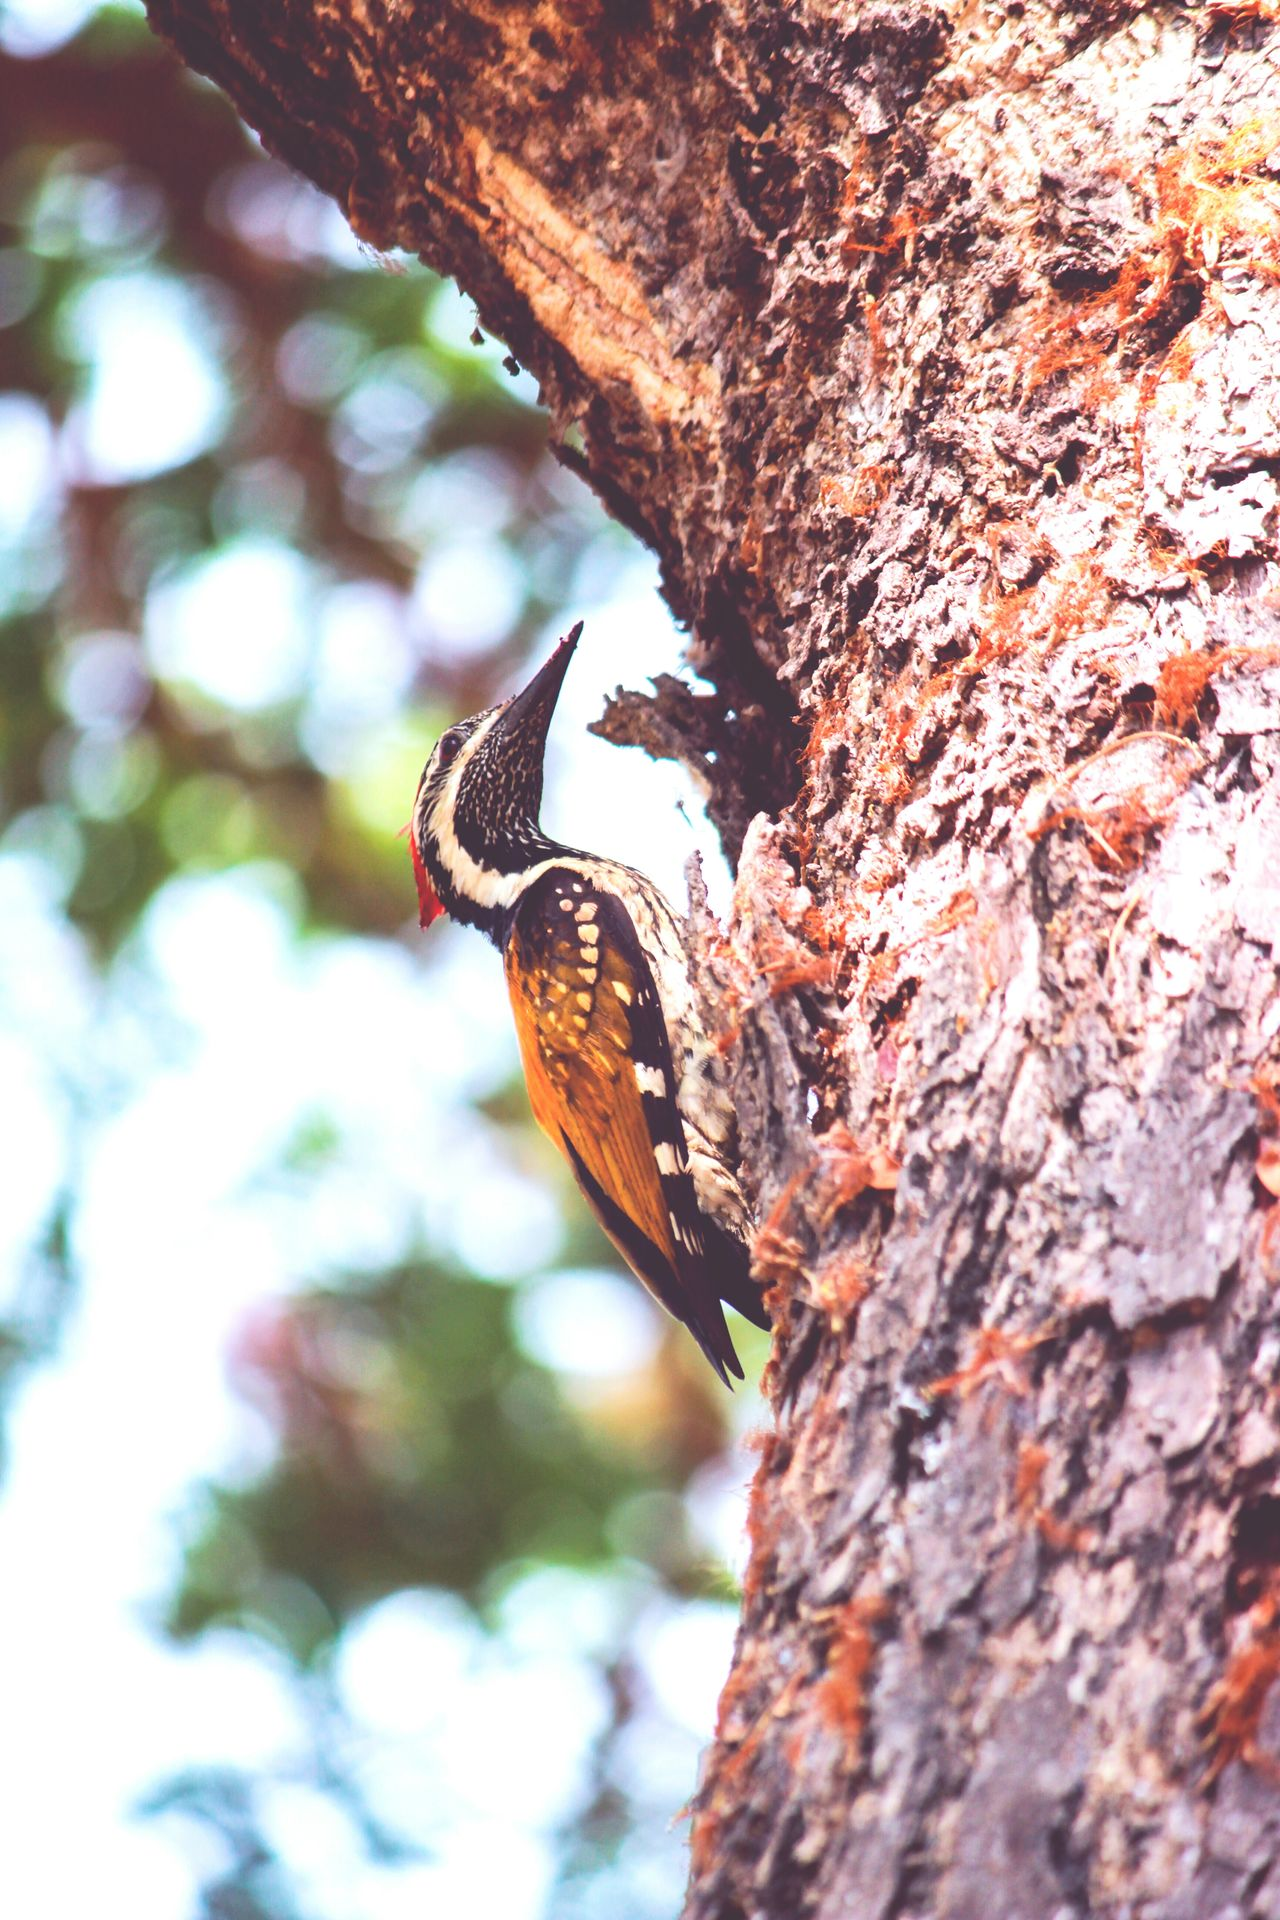 Woodpecker Pecking Woodpecker In Tree Bird Birds Of EyeEm  Animal Themes Tree Outdoors Tree Trunk Low Angle View Nature Close-up Beauty In Nature Bird Of Prey Sky Day No People